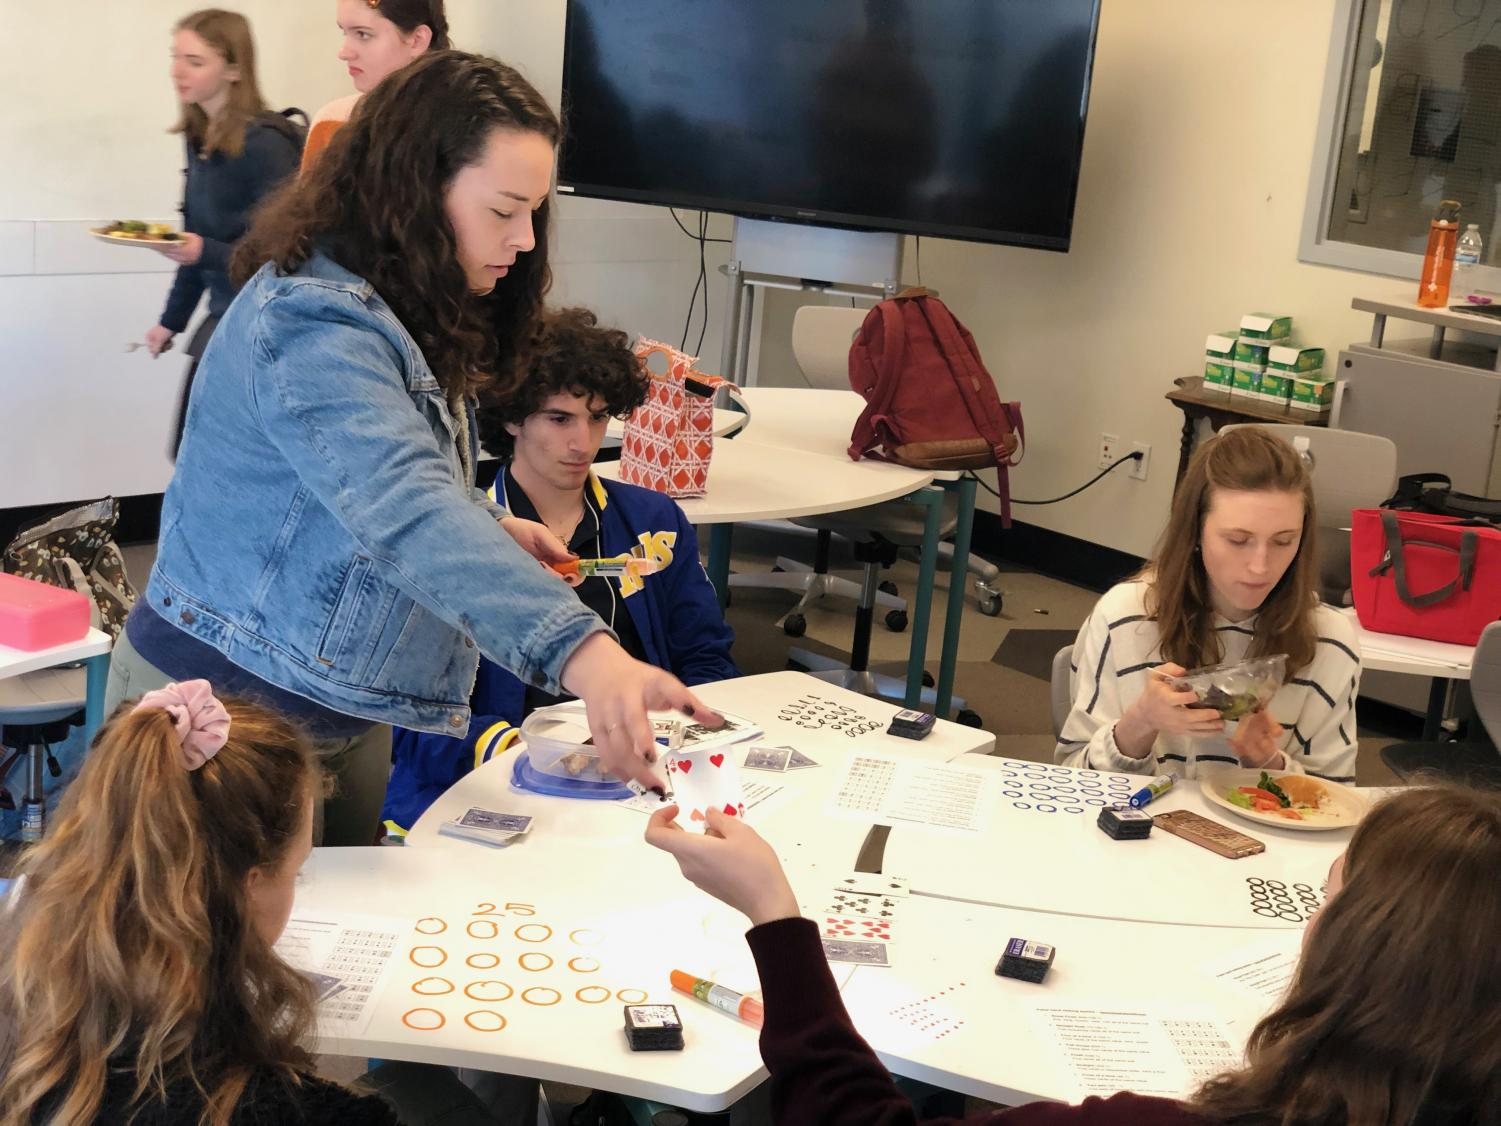 Card Club co-leader Dena Silver teaches members about Texas Hold'em Poker. First time poker player freshman Natalie Kushner aced the first round with a straight flush.